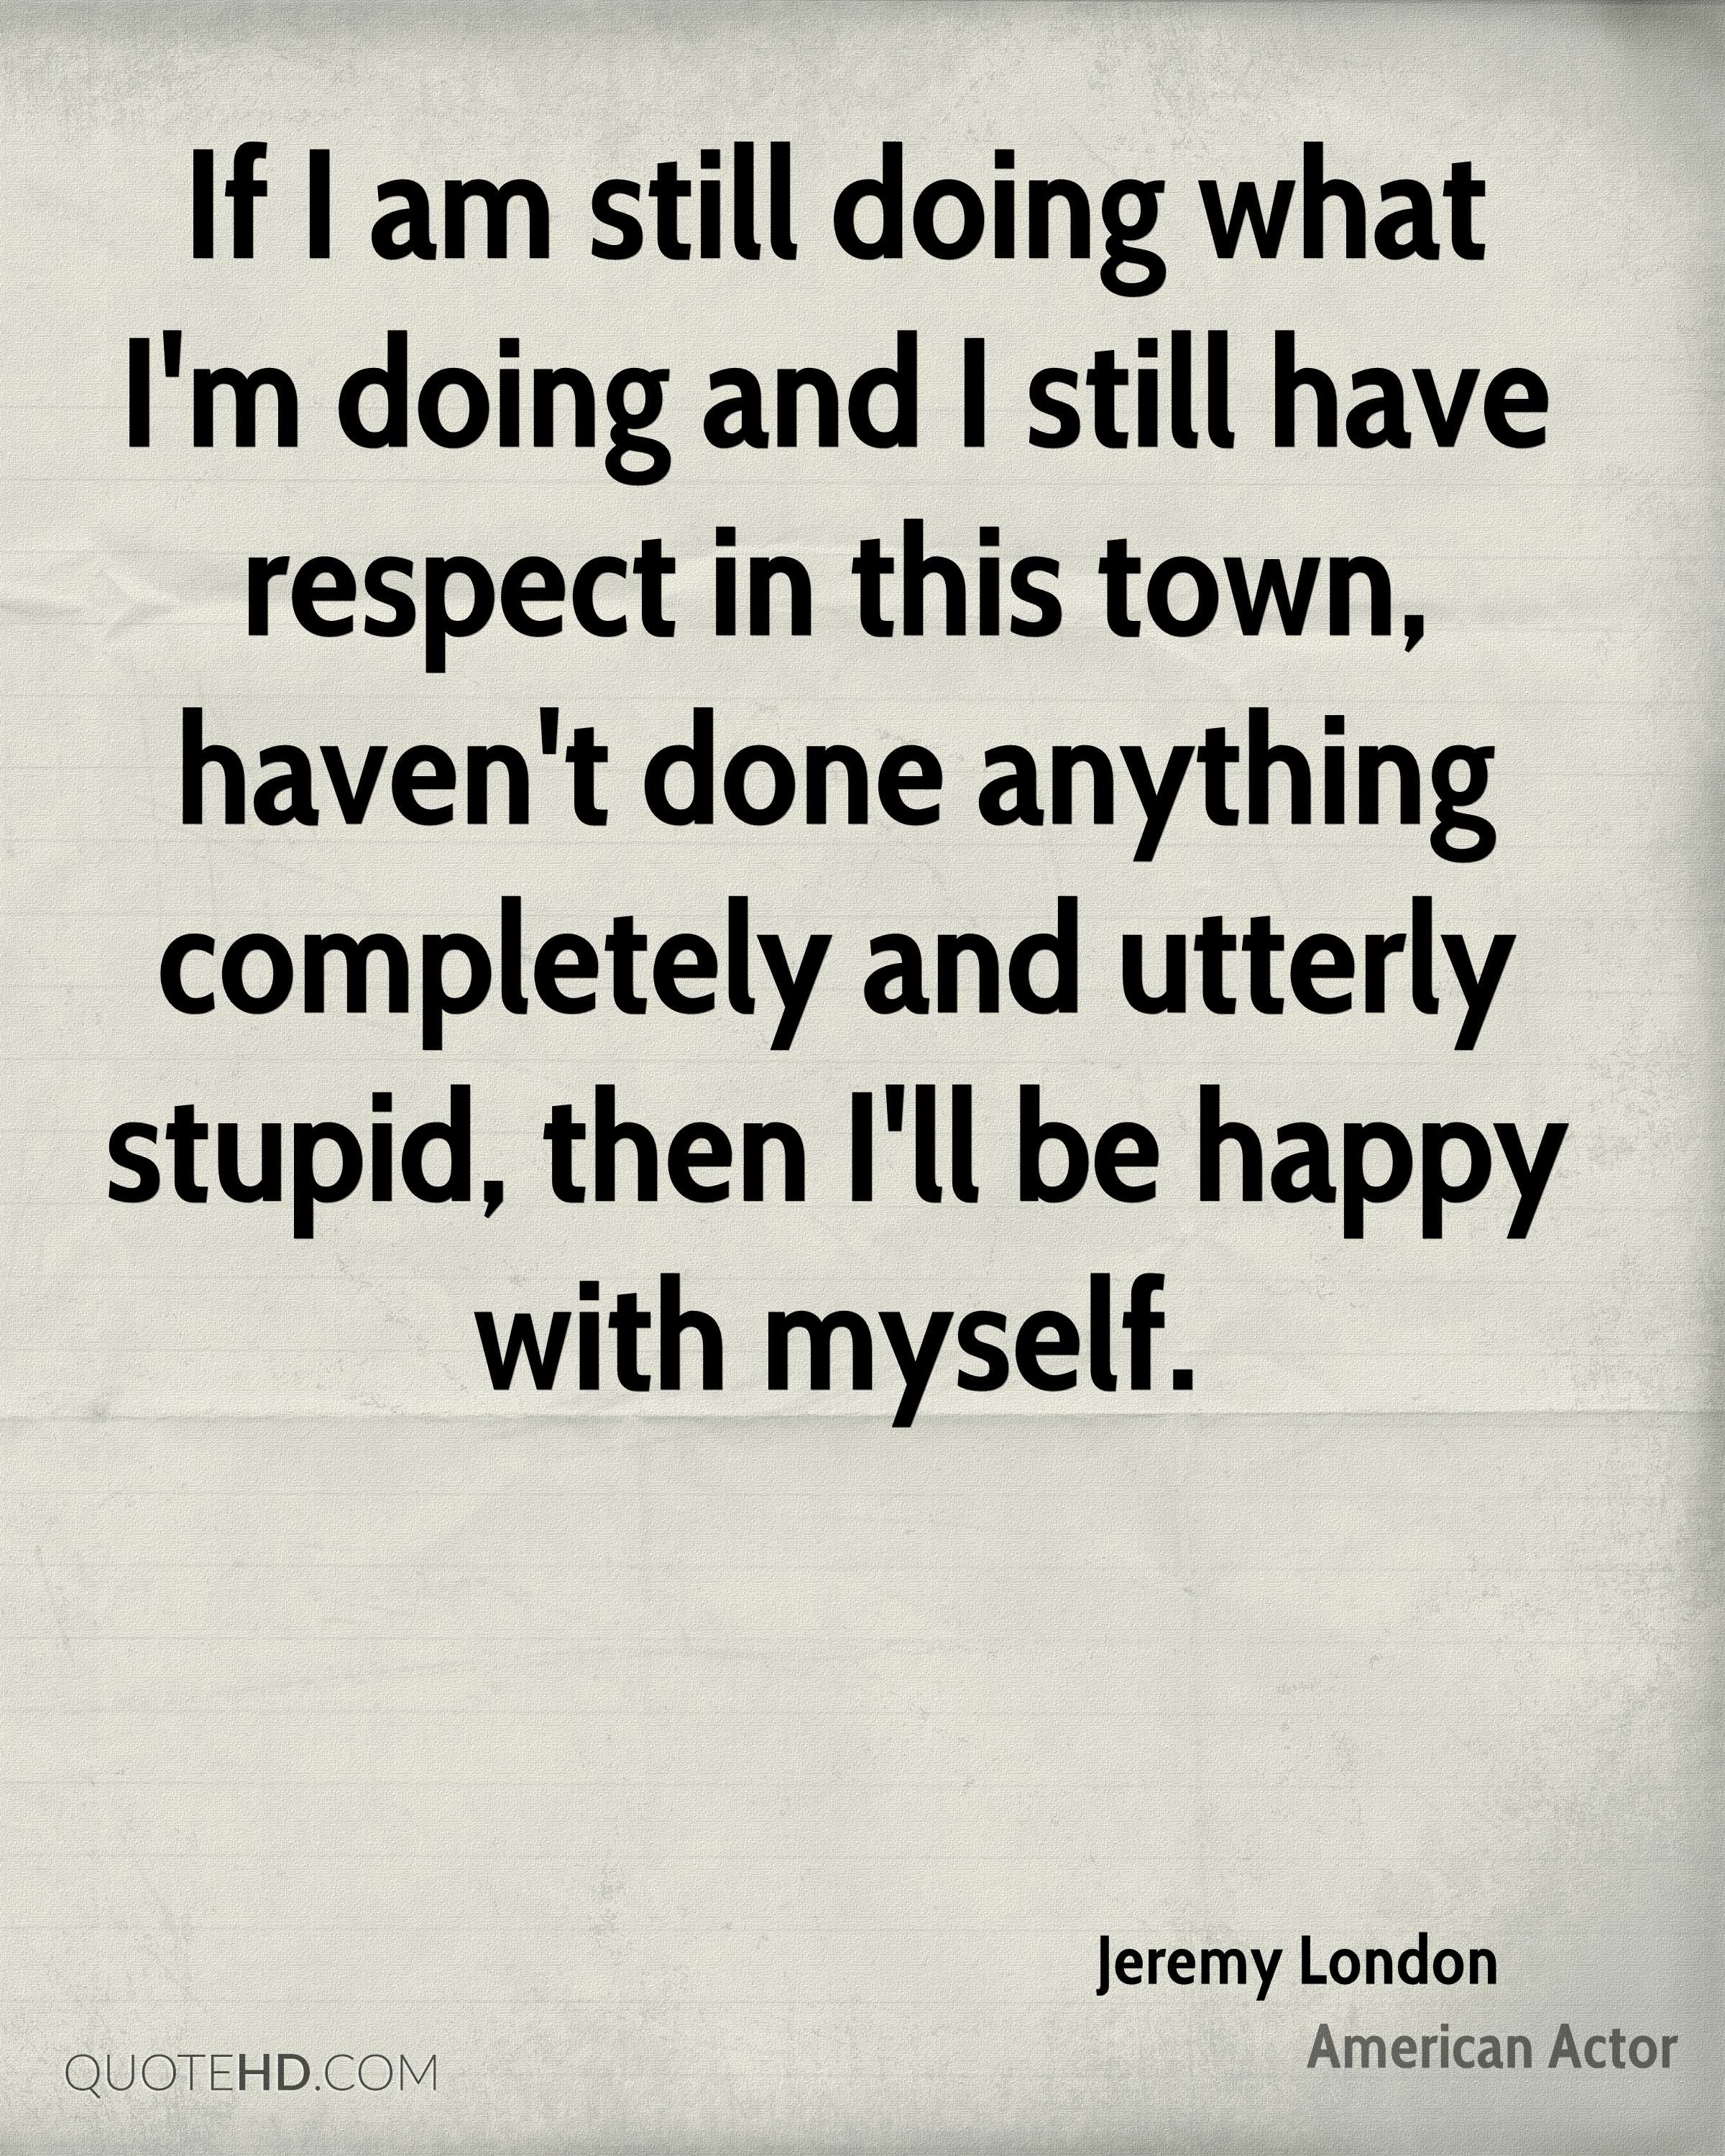 If I am still doing what I'm doing and I still have respect in this town, haven't done anything completely and utterly stupid, then I'll be happy with myself.